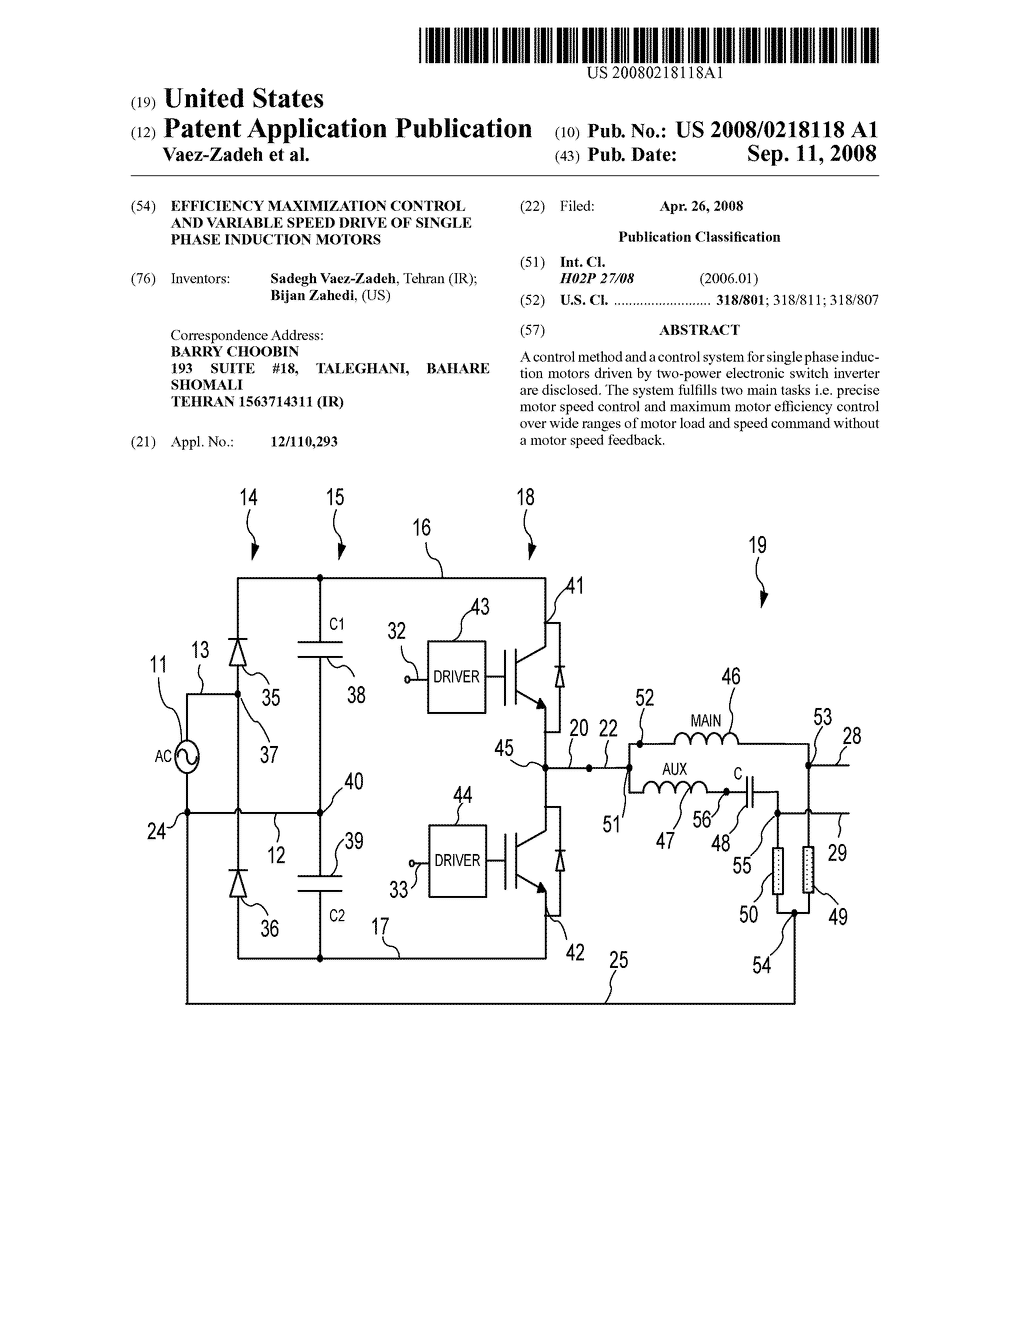 Efficiency Maximization Control and Variable Speed Drive of